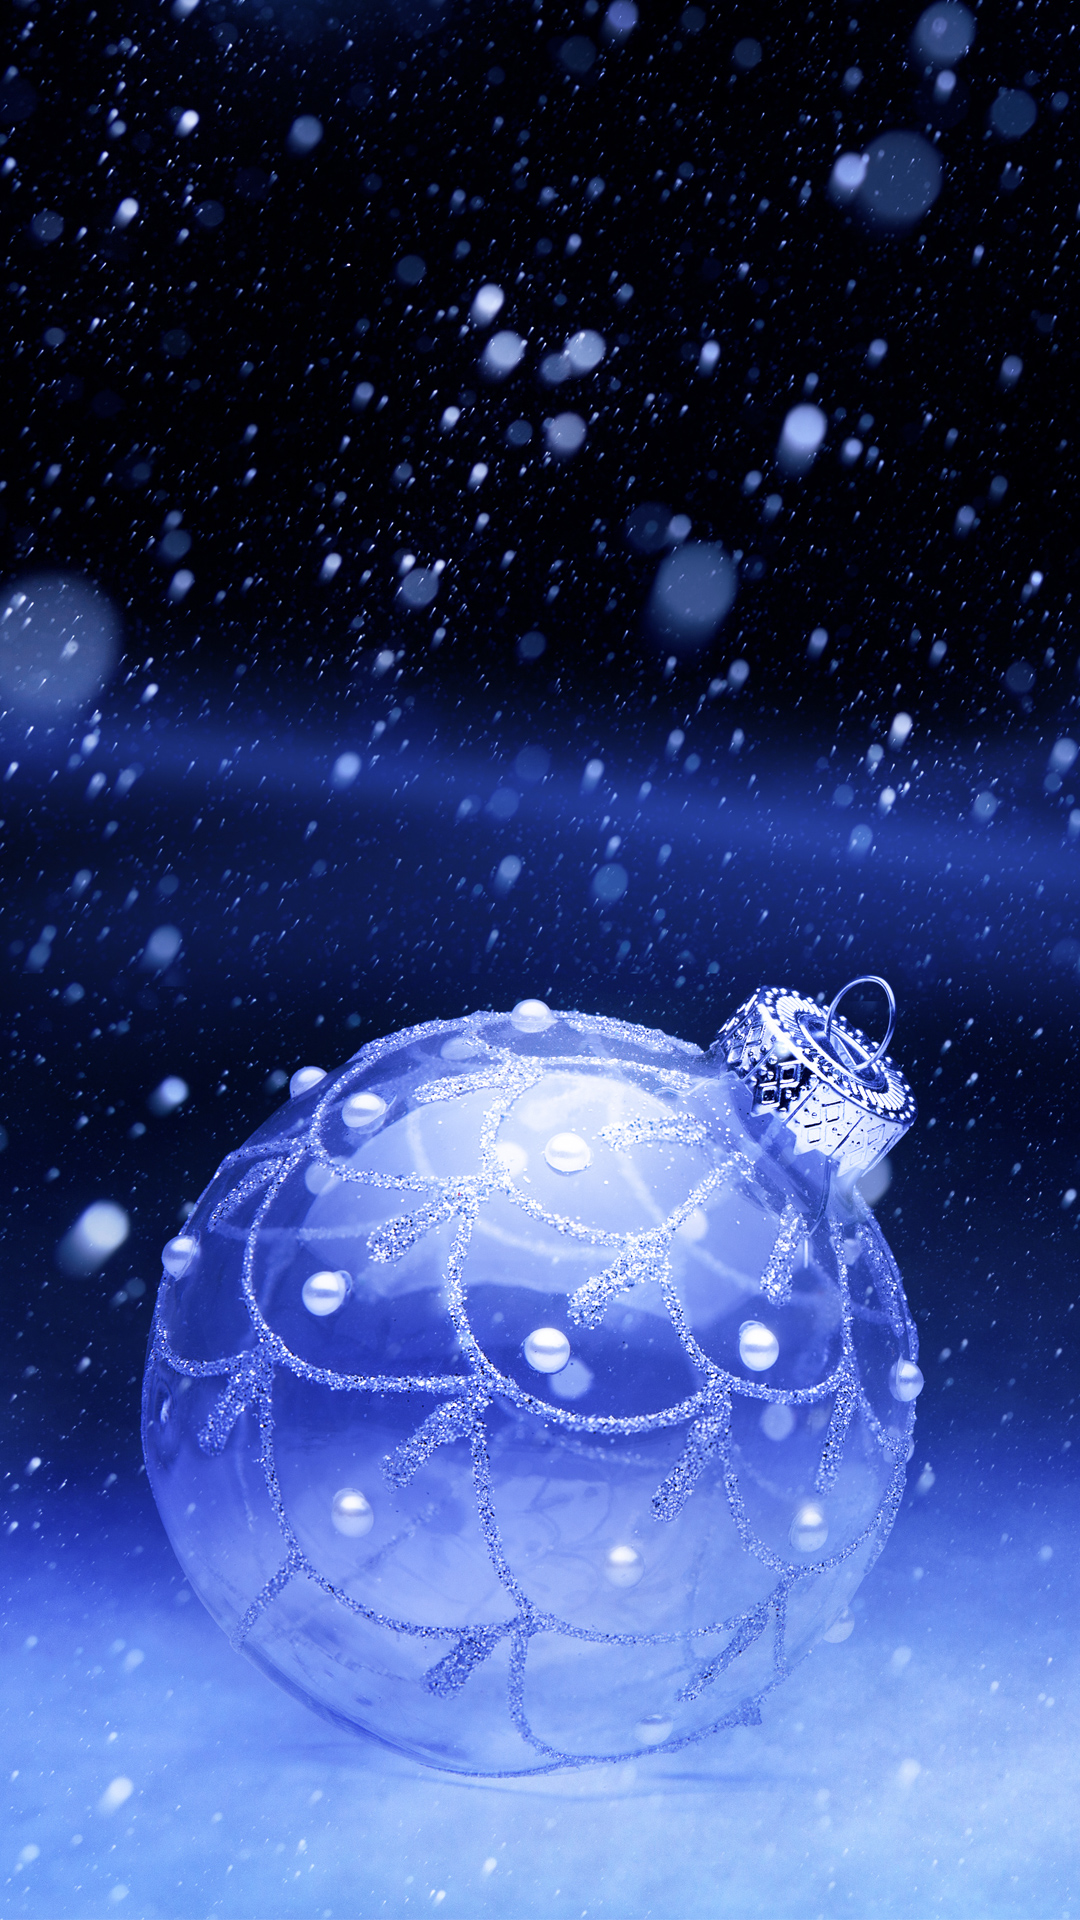 Christmas Blue iPhone 7 Plus Wallpaper Gallery Yopriceville 1080x1920